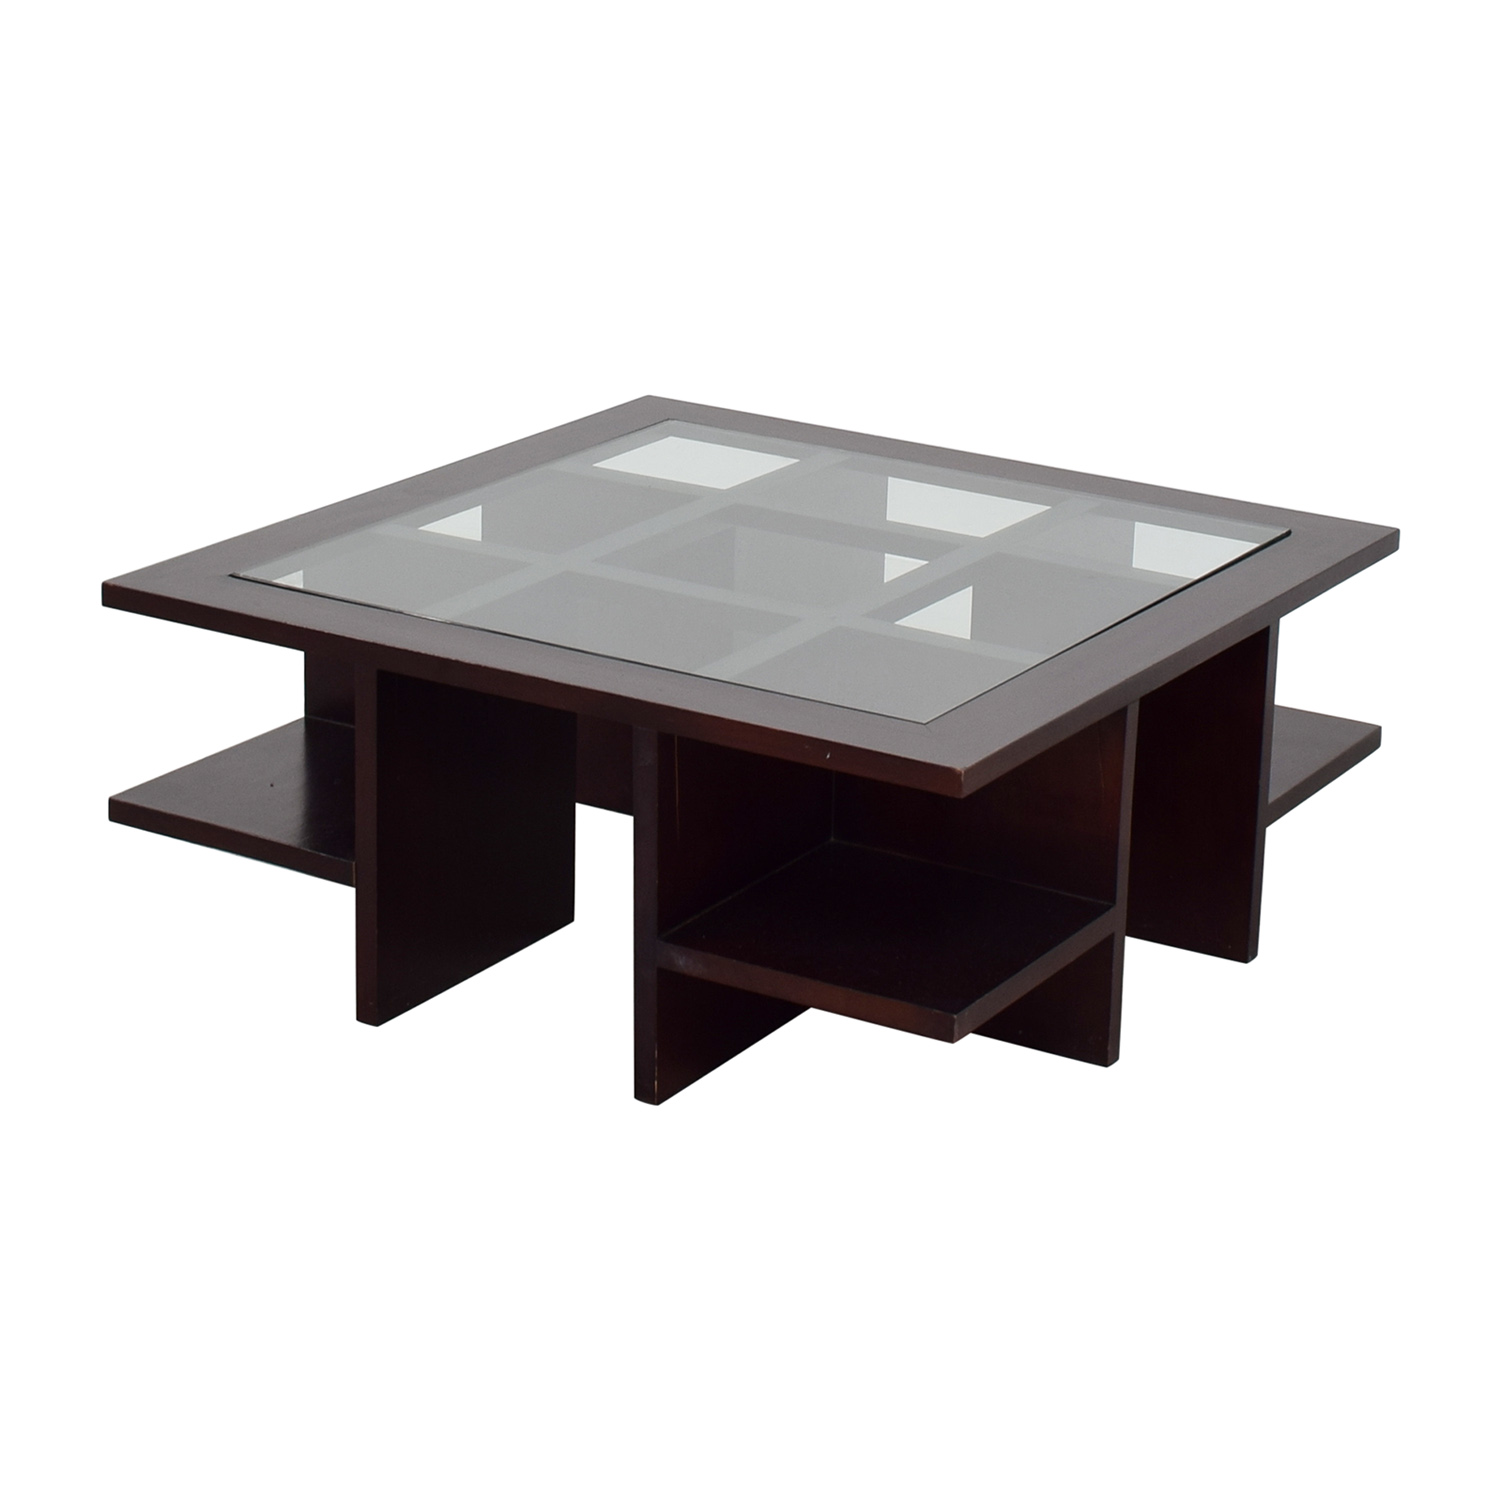 Moie Moie Wood and Glass Coffee Table with Side Shelves used